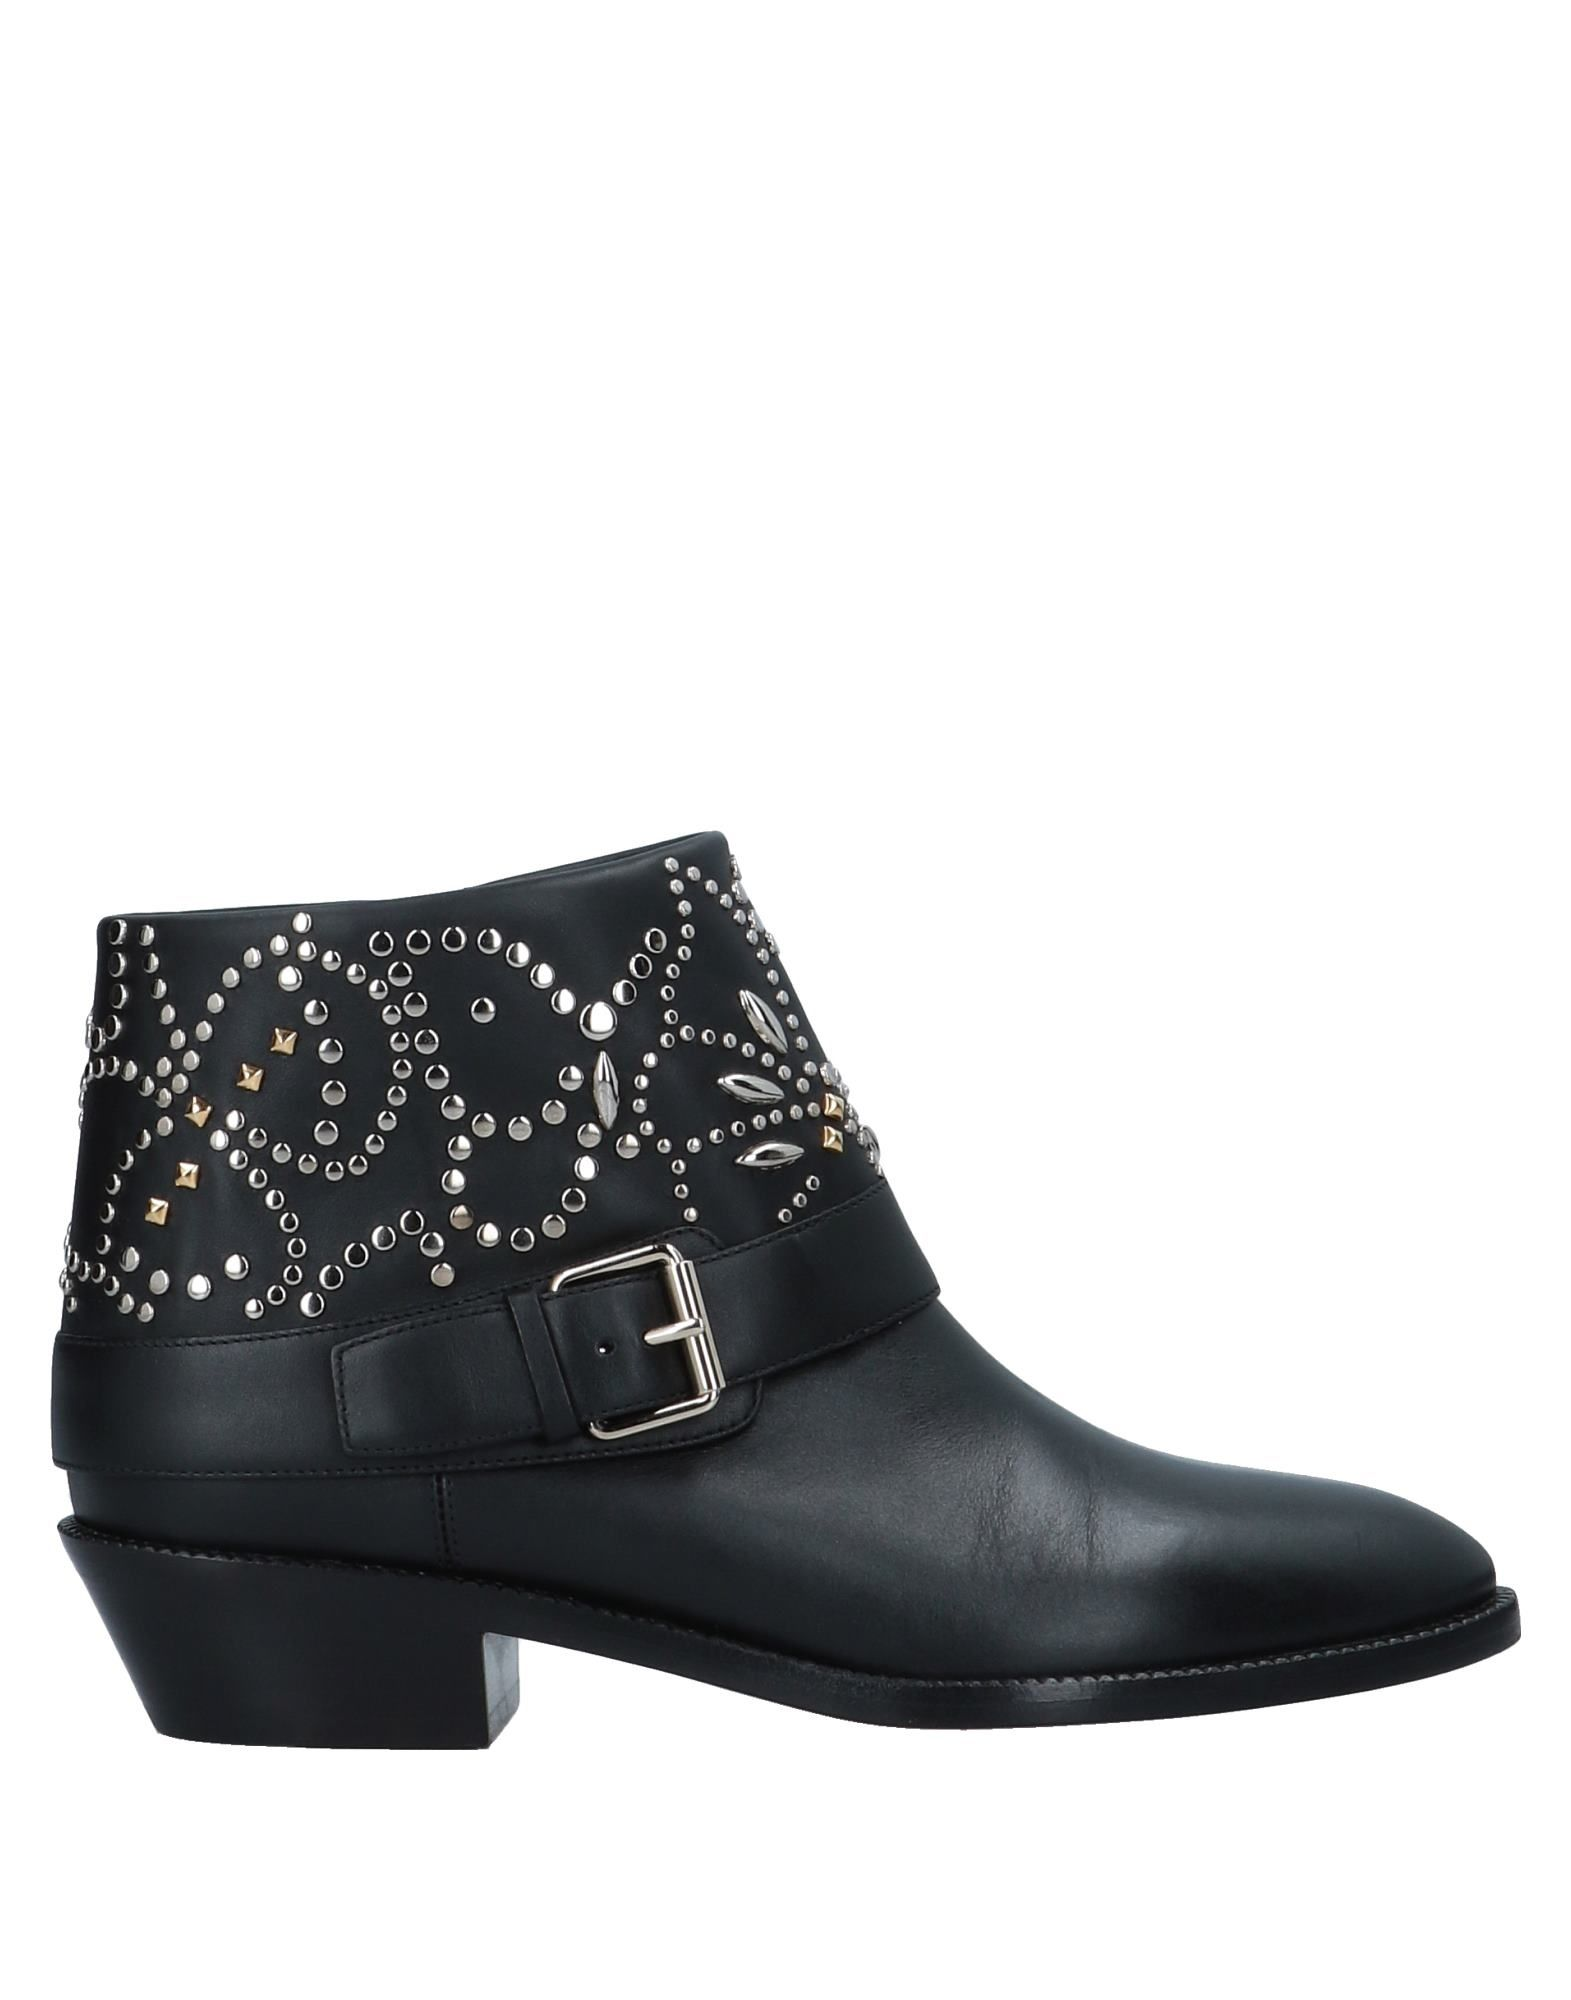 Bottine Valentino Garavani Femme - Bottines et Valentino Garavani Noir Confortable et Bottines belle d75594